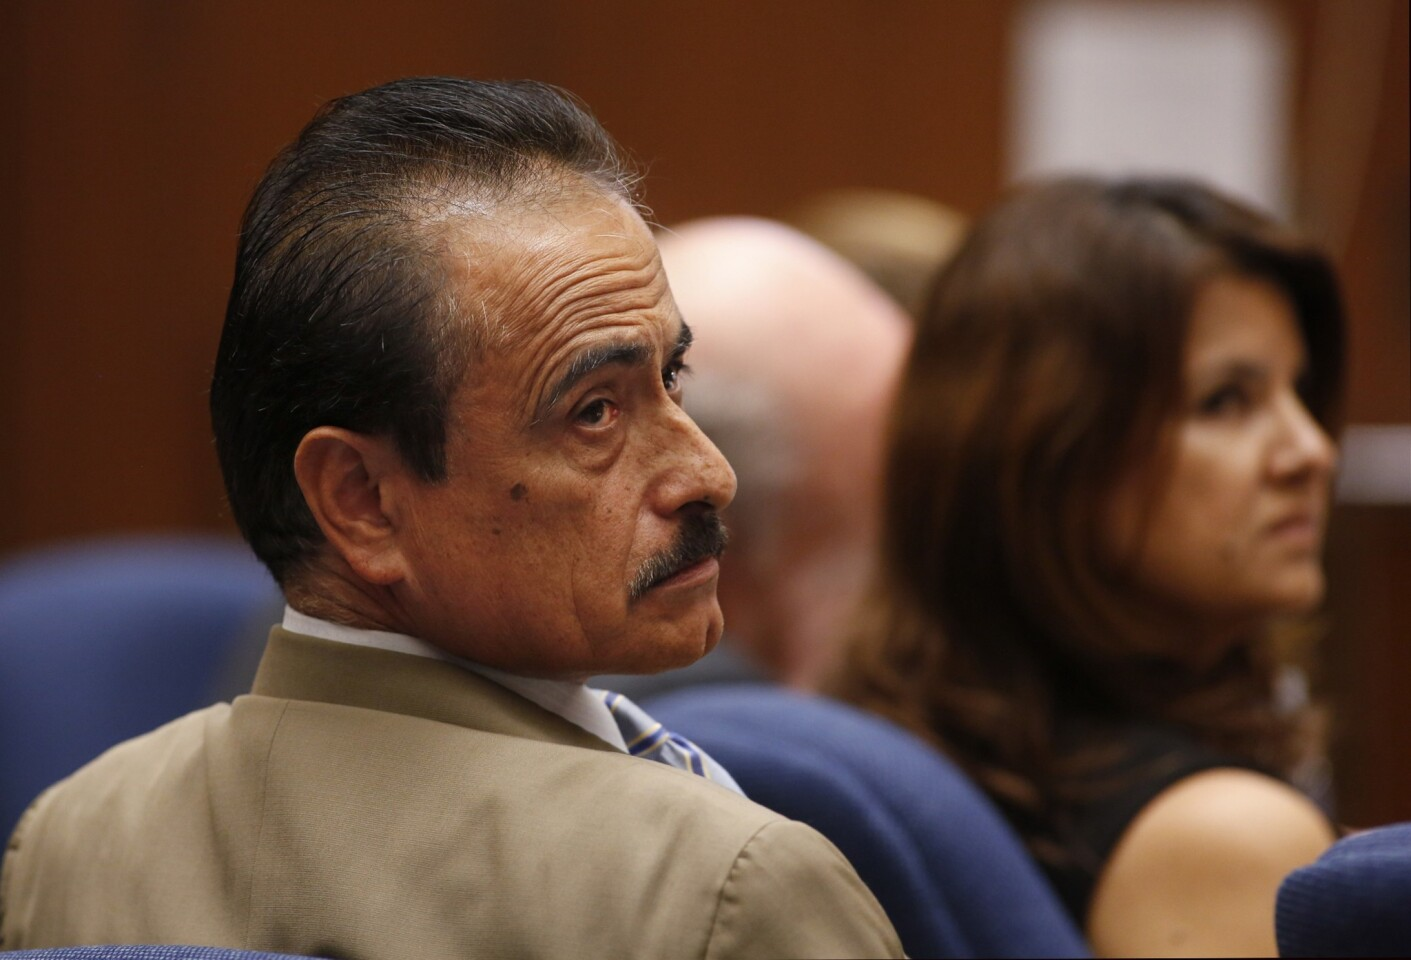 Richard Alarcon, left, and his wife, Flora Montes de Oca Alarcon, at the couple's perjury trial in downtown L.A. on July 8.